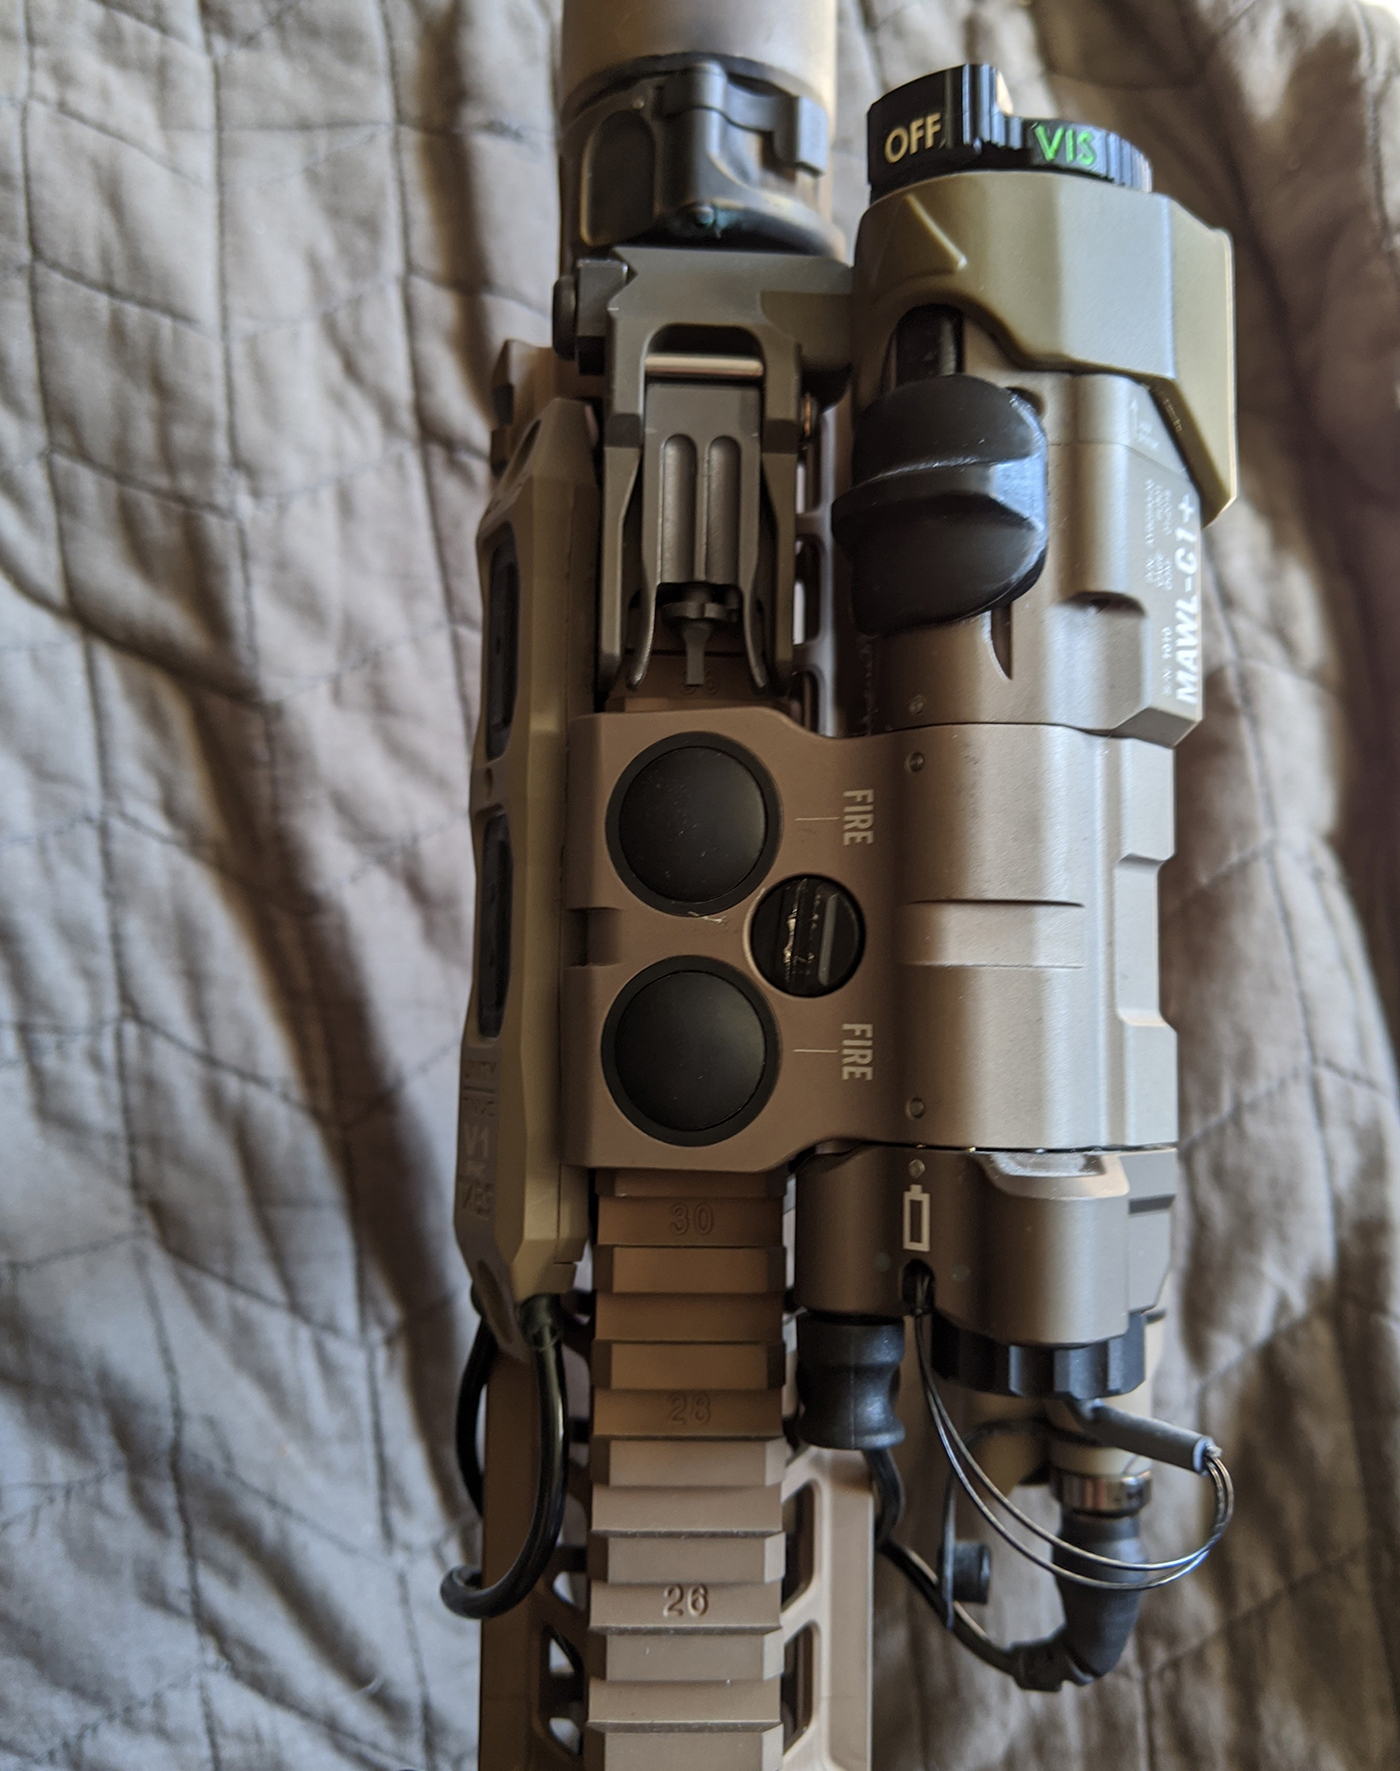 MAWL laser on DARC informed HK416...also equipped with Aimpoint Acro P-1, Elcan SpectreDR, Surefire Scout, and other accessories configured for CQB.